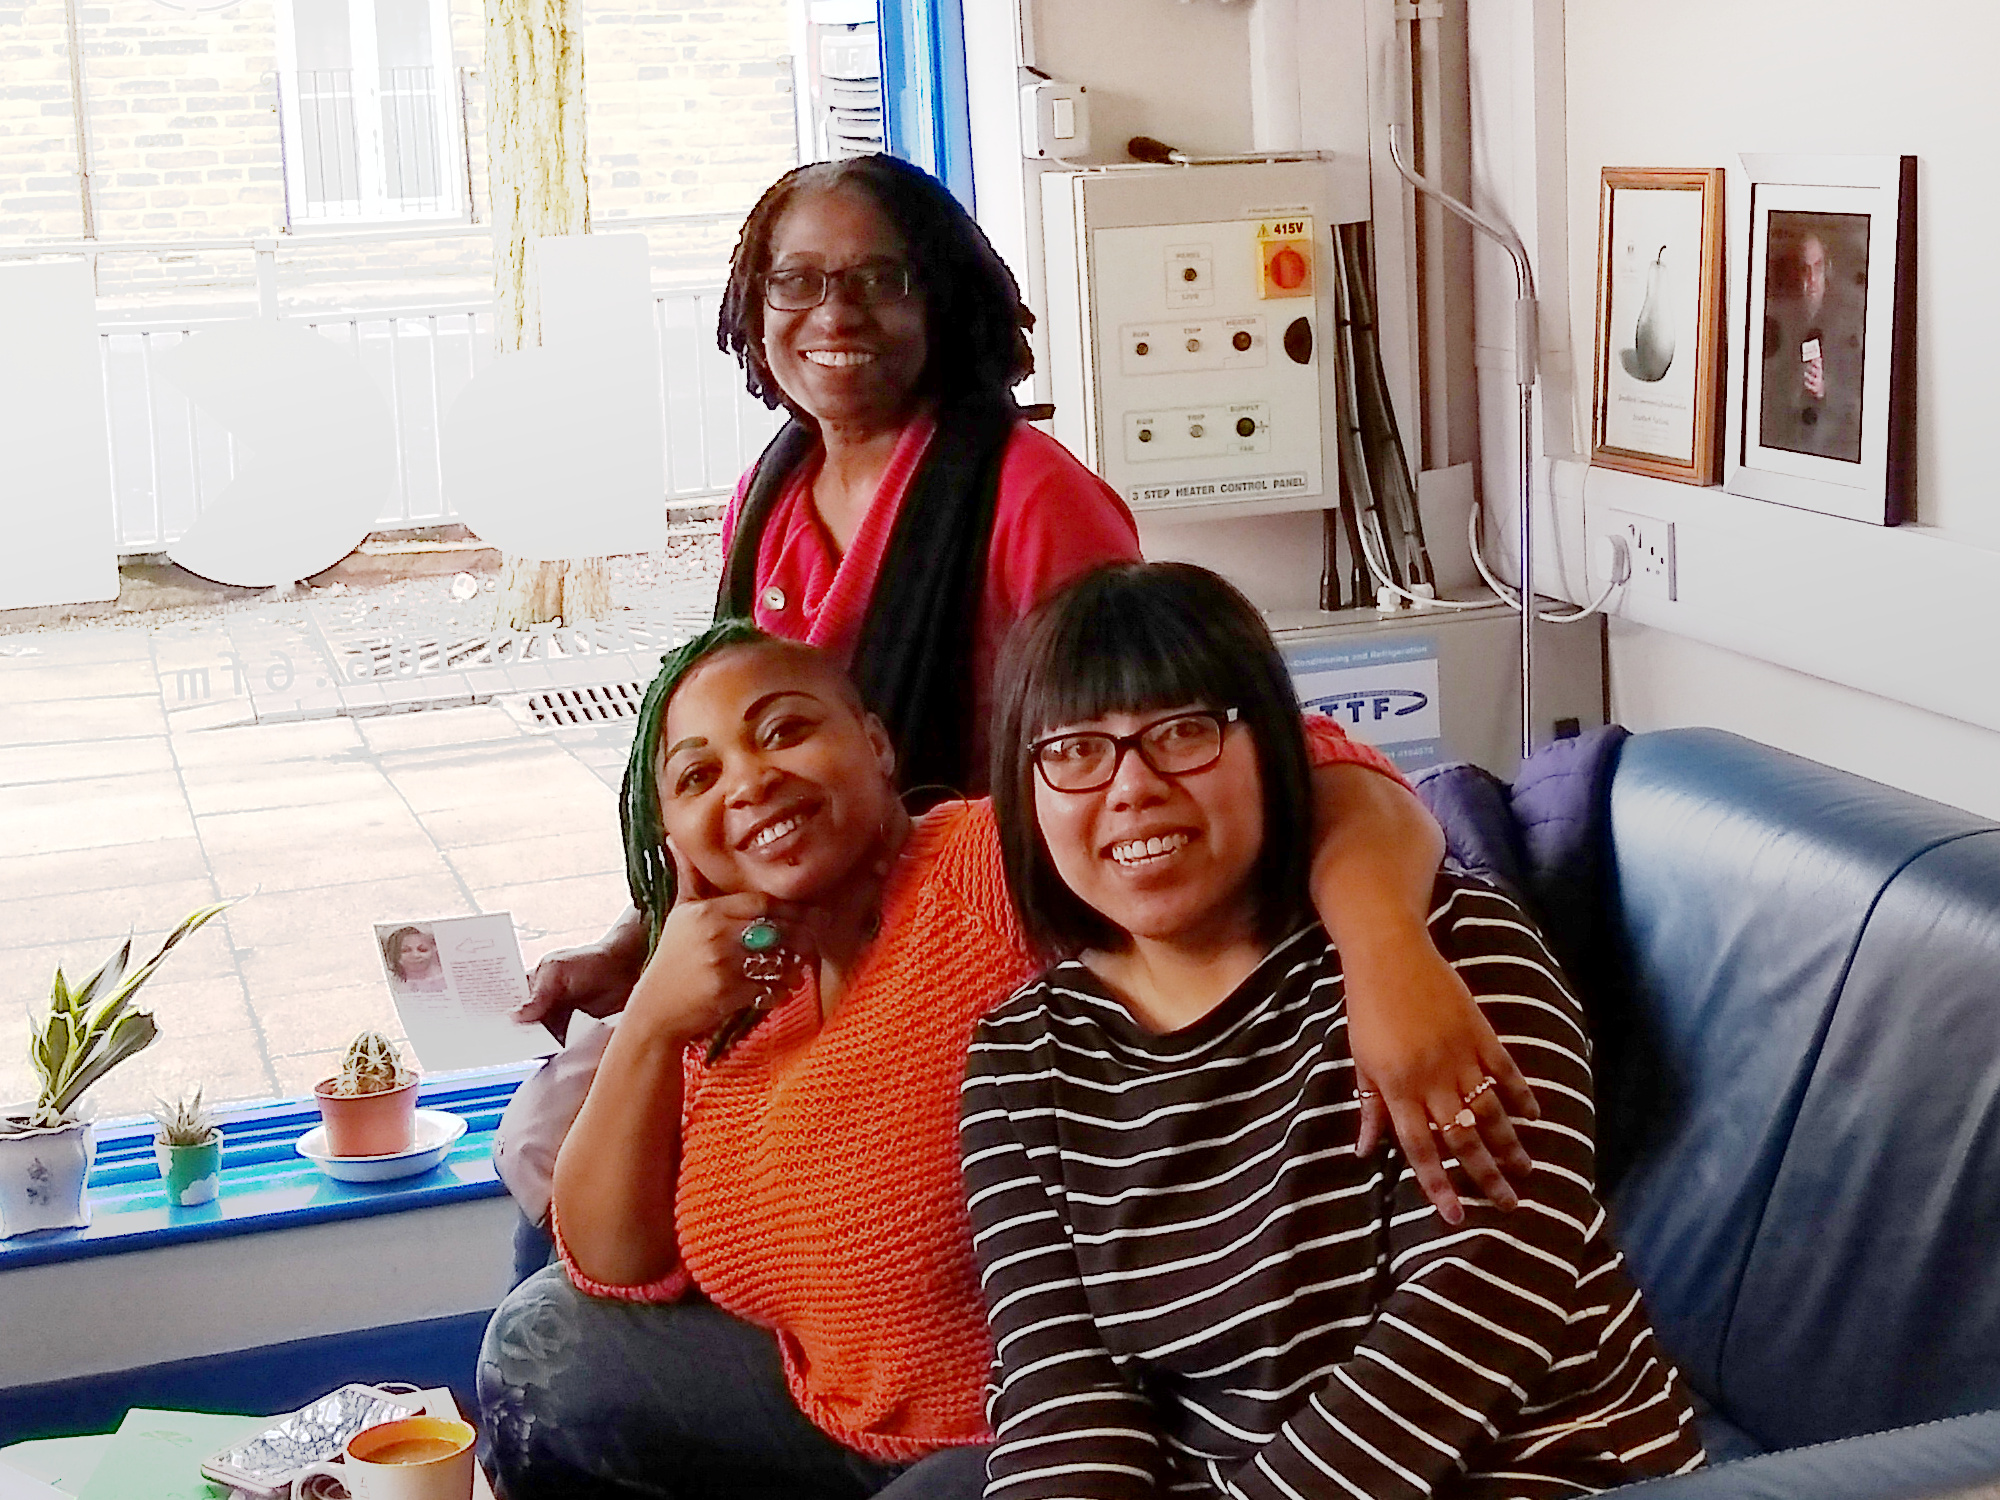 Maureen, Kafayat and shi group photo on a blue couch